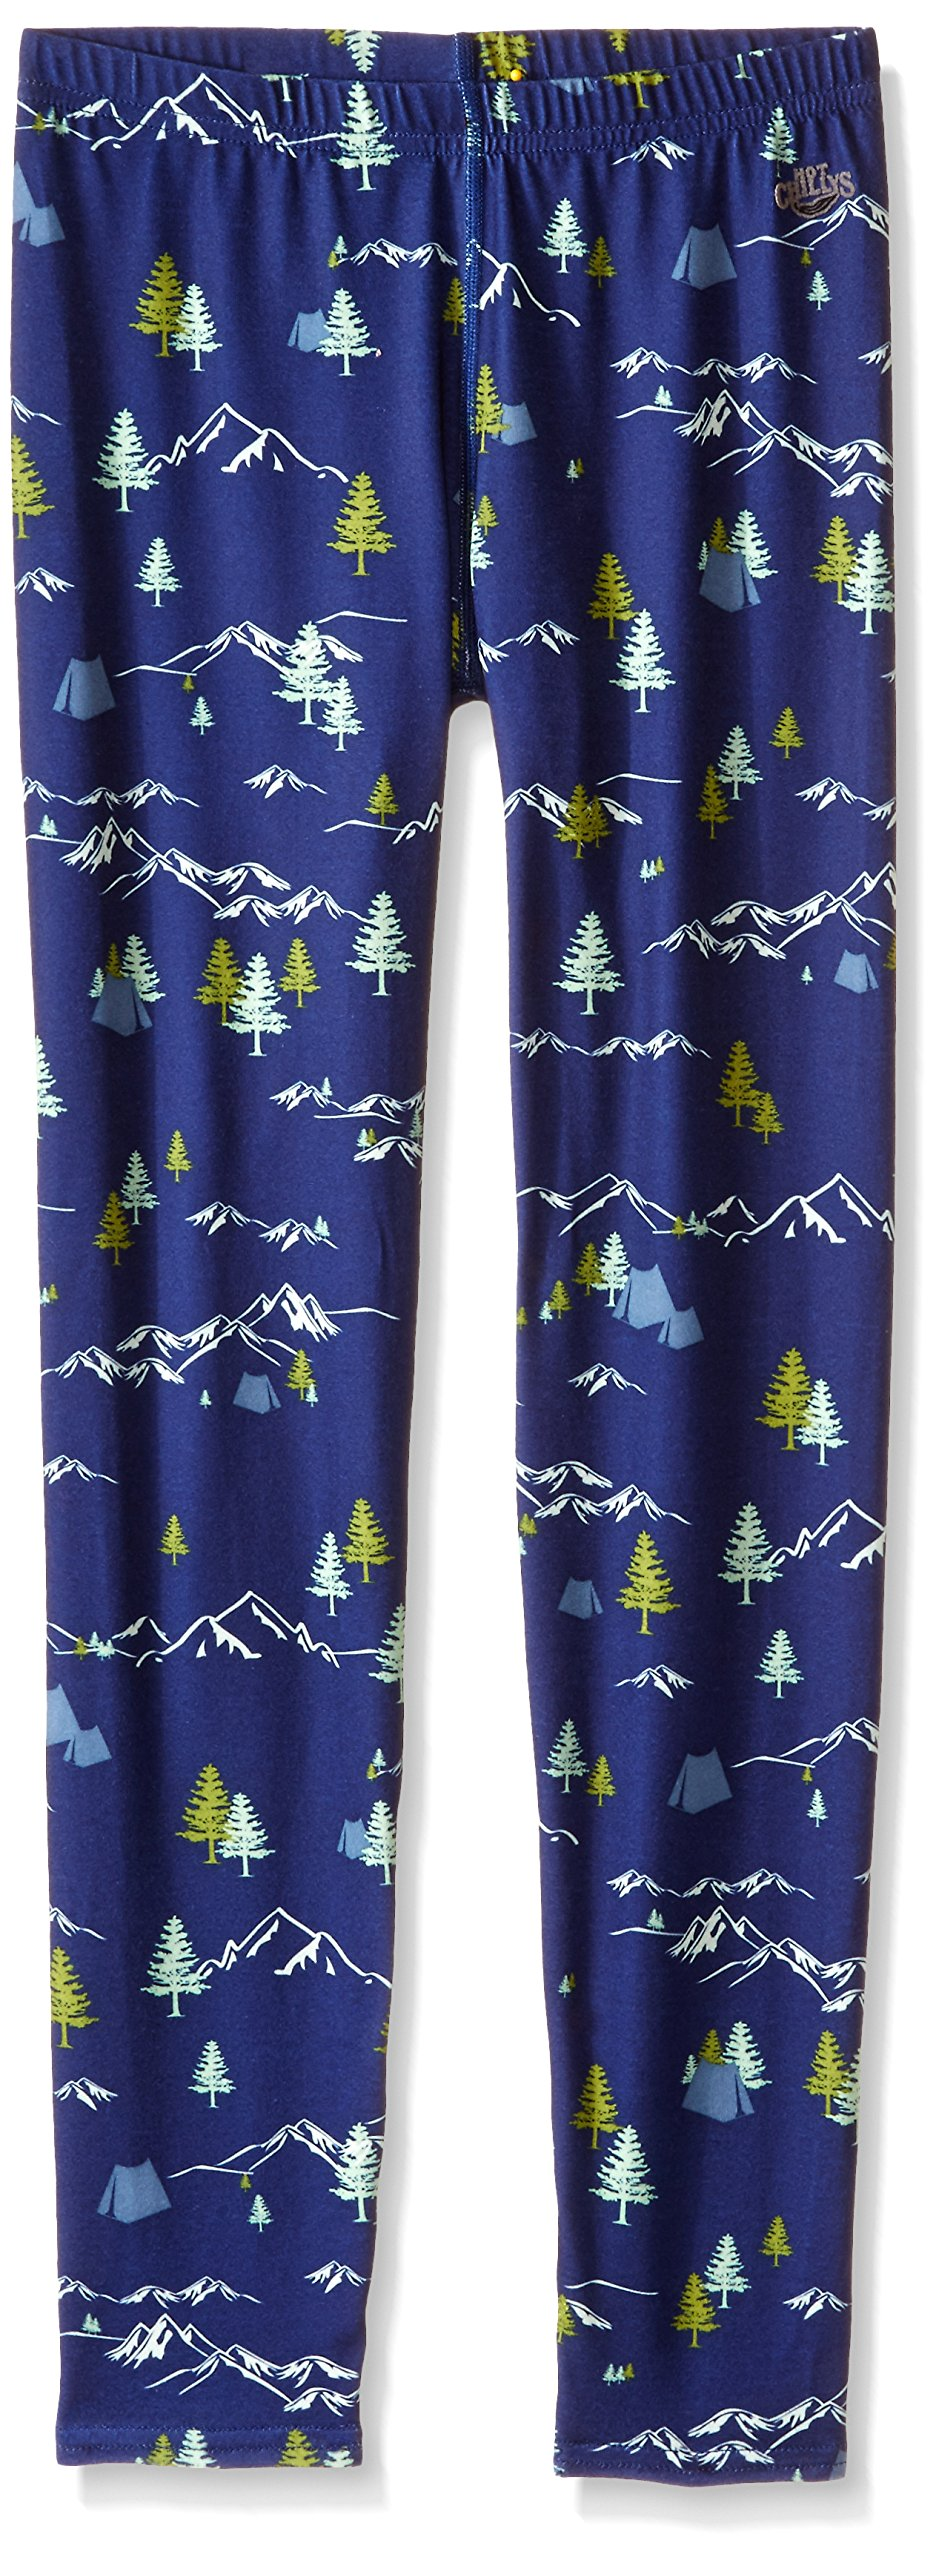 Hot Chillys Youth Original 2 Print Tights (Box), Large, Adventure